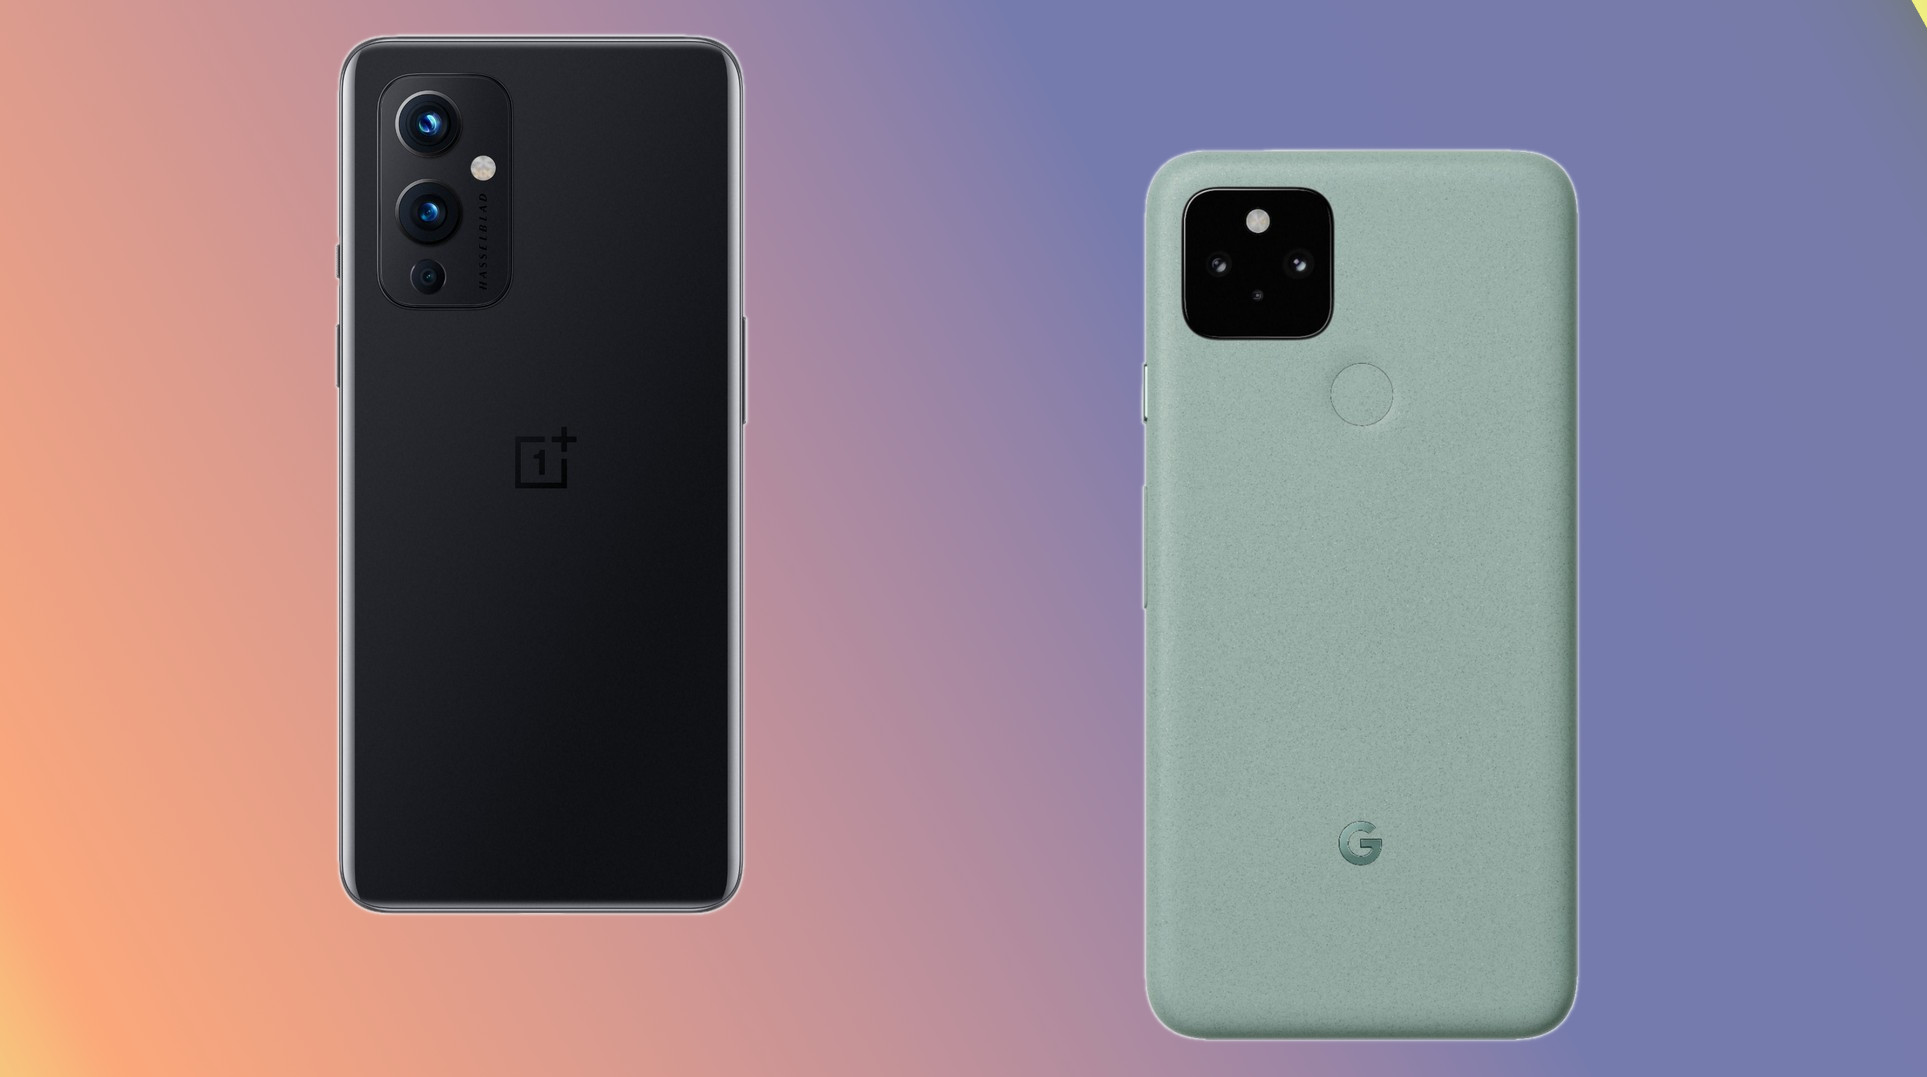 OnePlus 9 vs Google Pixel 5: Should you go with OnePlus or Google?